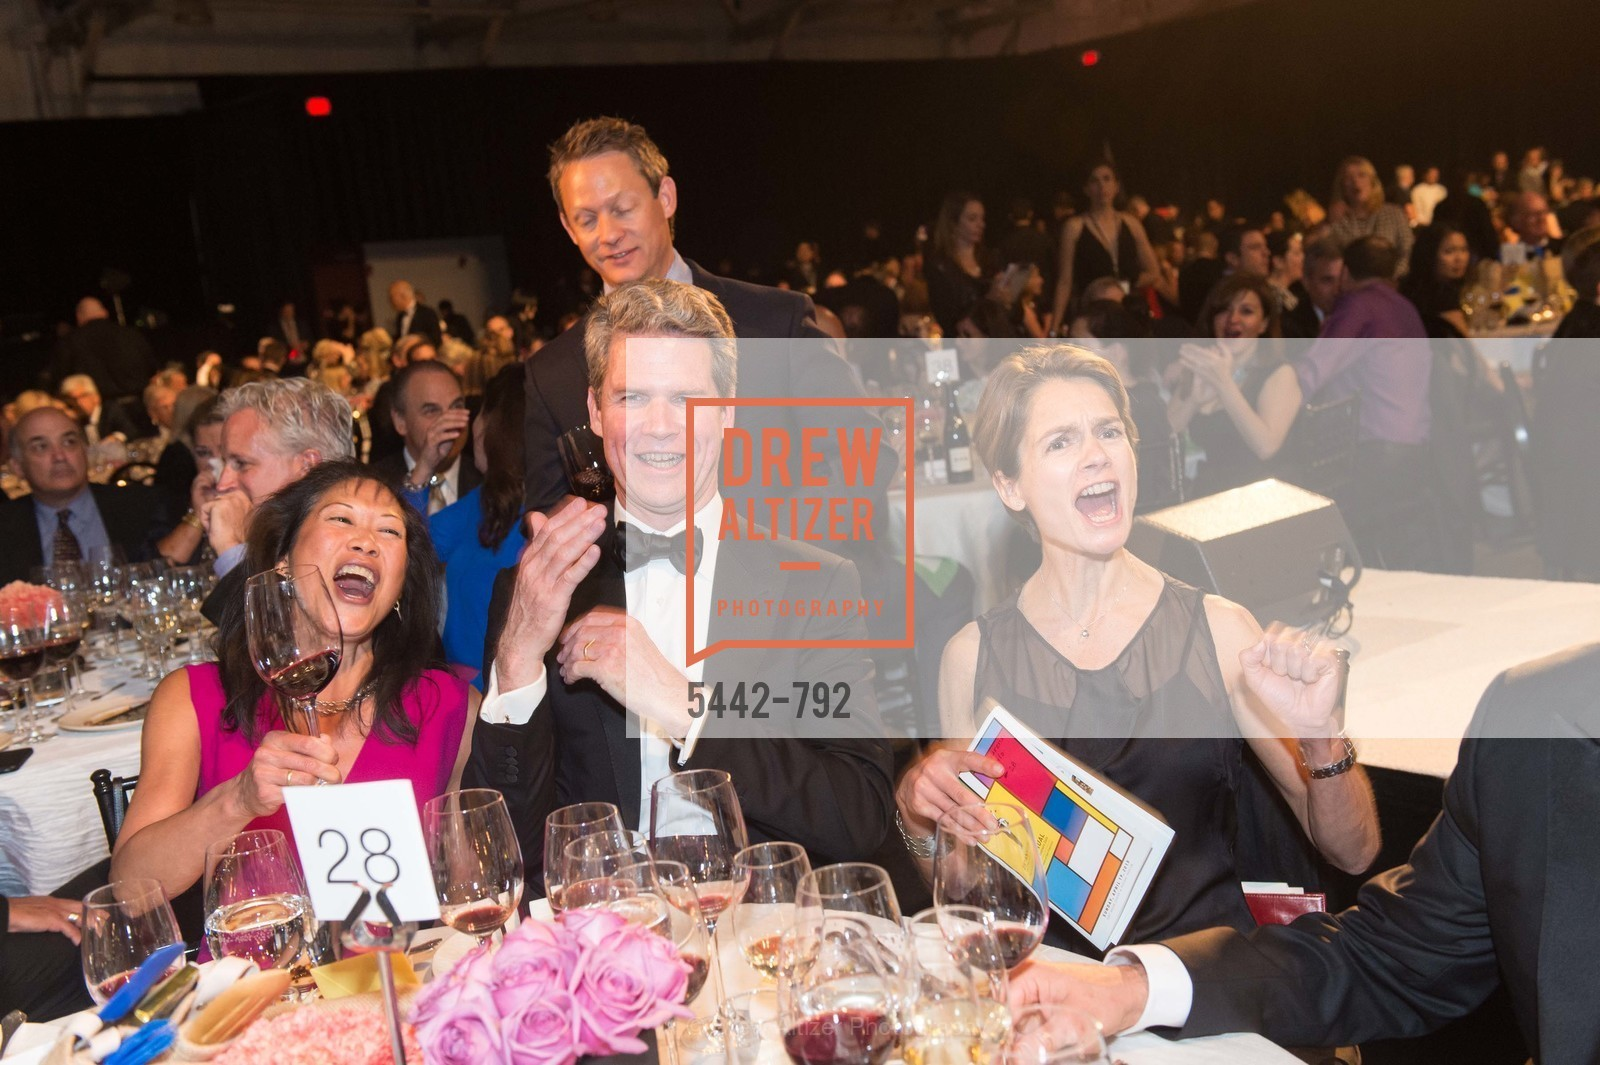 Debbie Jorgensen, Blake Jorgensen, Laura Fanlo, MEALS ON WHEELS OF SAN FRANCISCO'S 28th Annual Star Chefs and Vintners Gala, US, April 20th, 2015,Drew Altizer, Drew Altizer Photography, full-service agency, private events, San Francisco photographer, photographer california